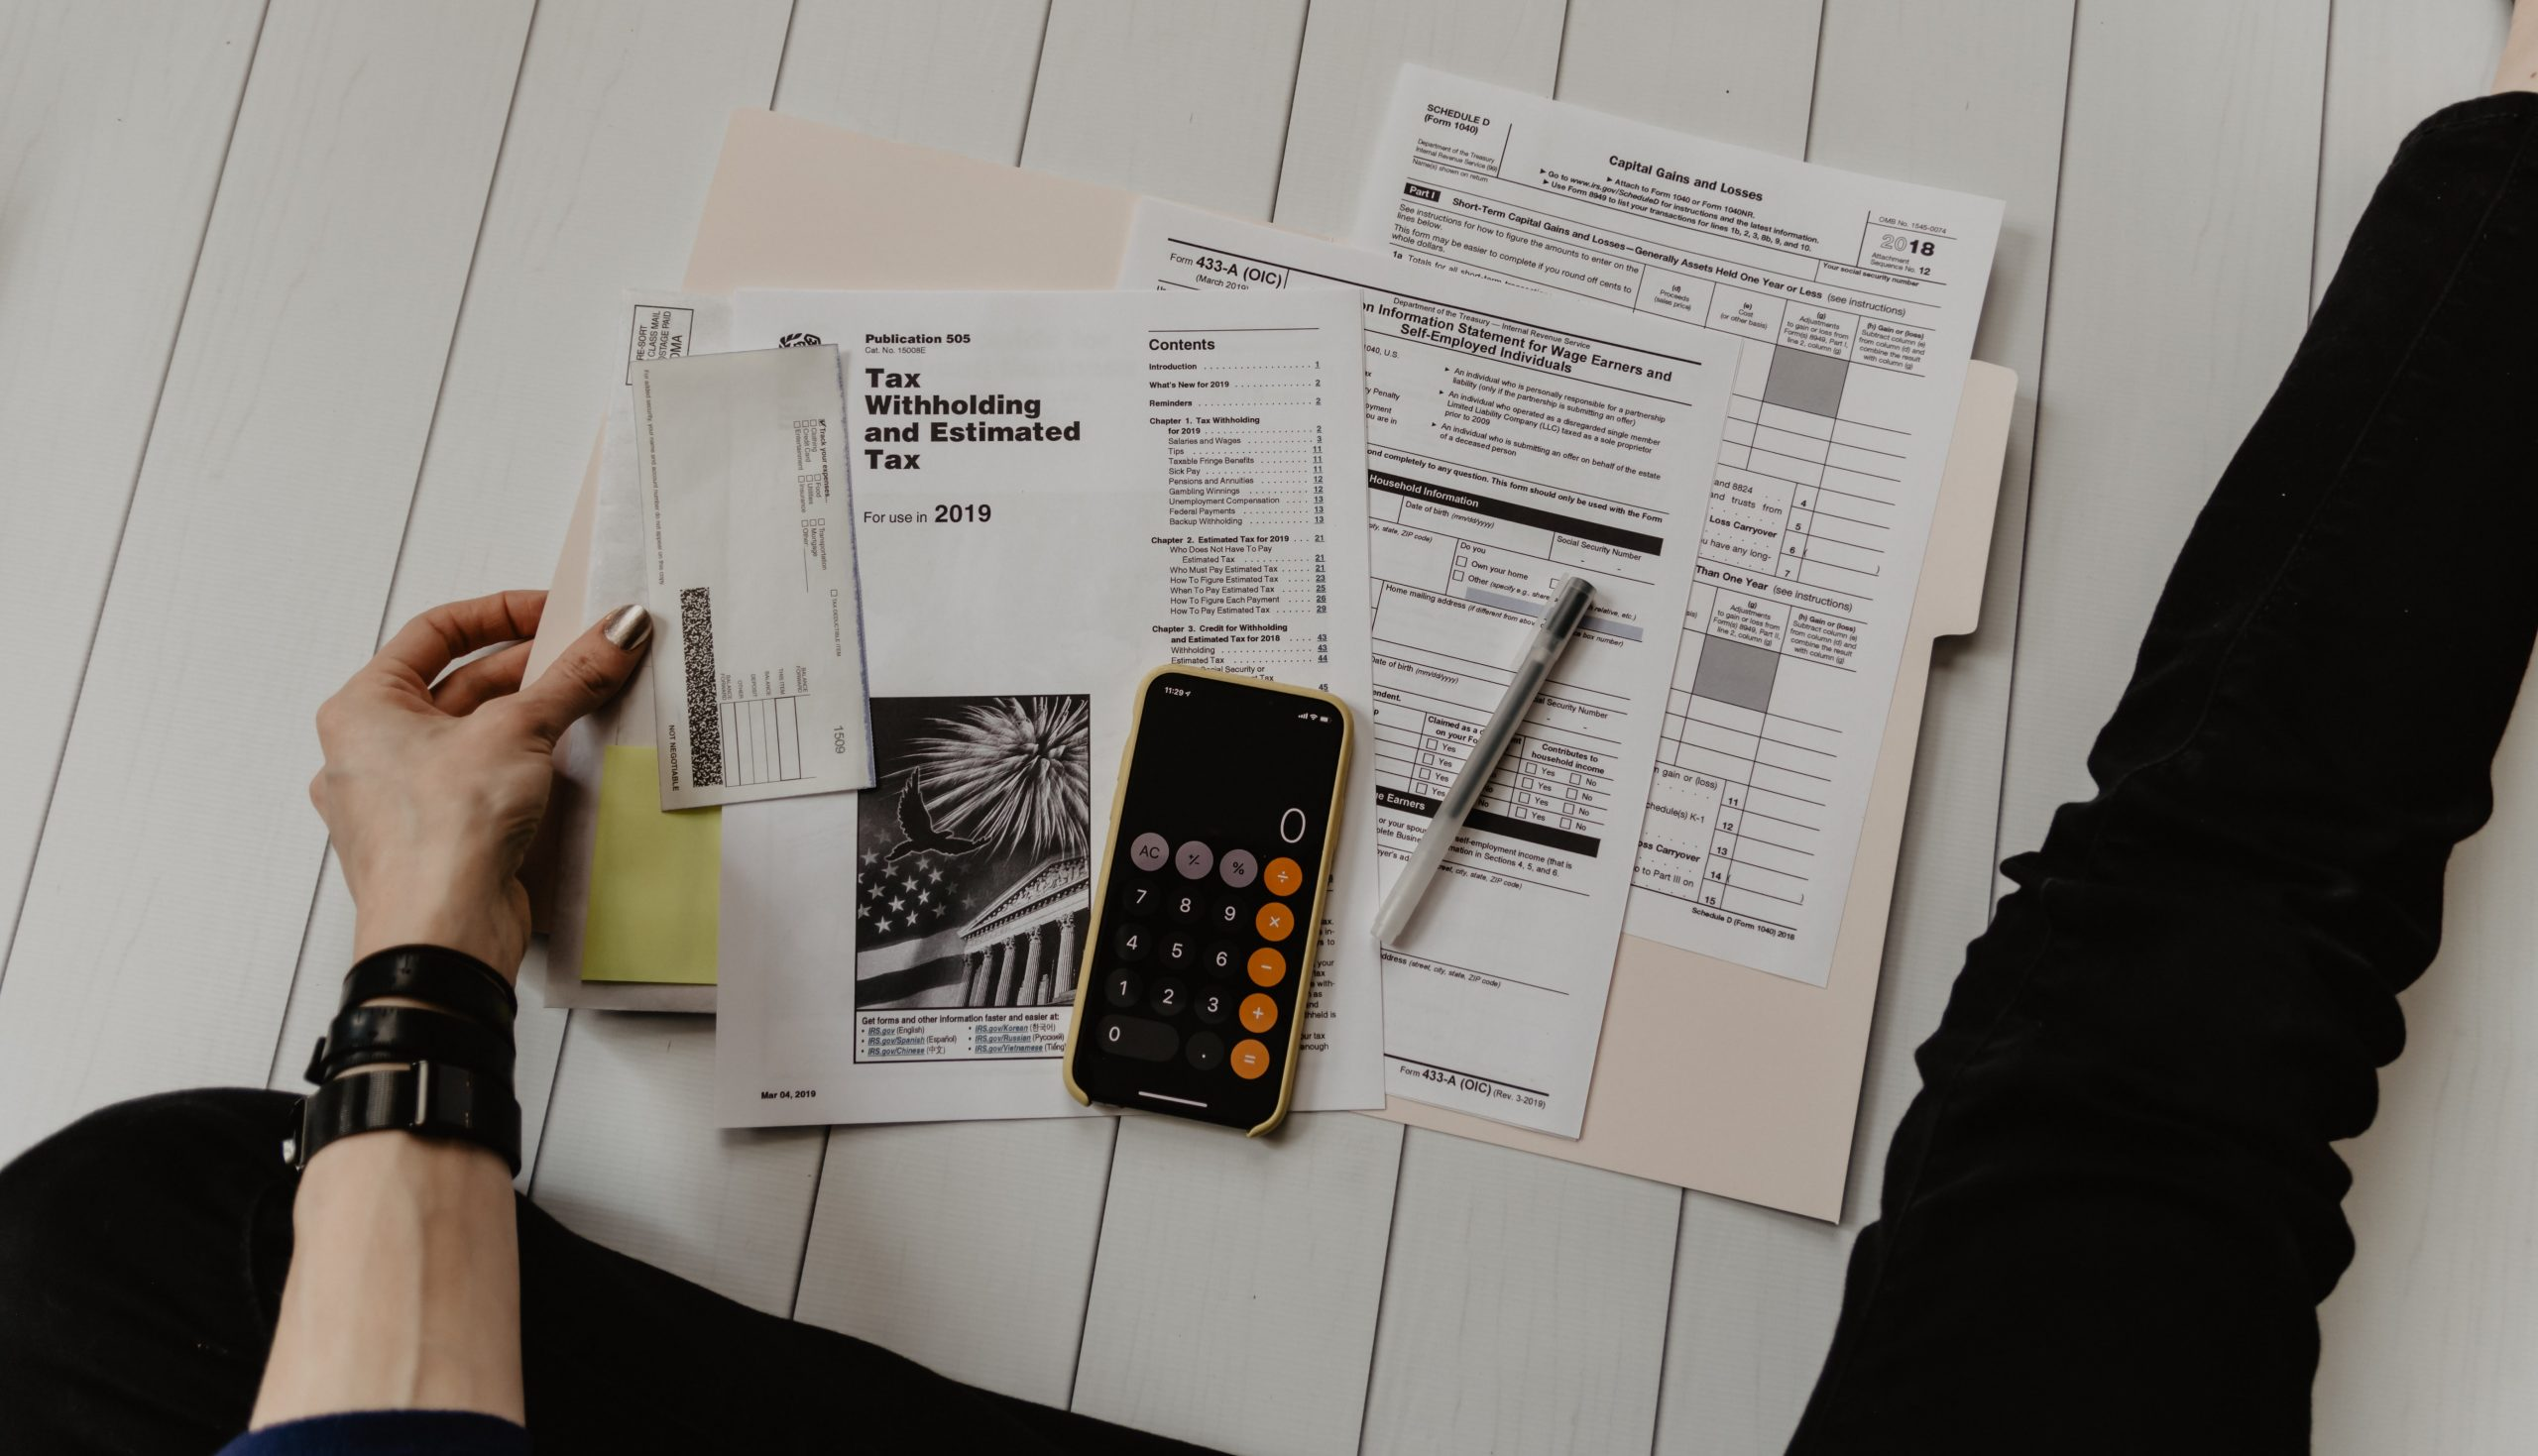 Cannabis IRS Audits Analysis and Best Practices